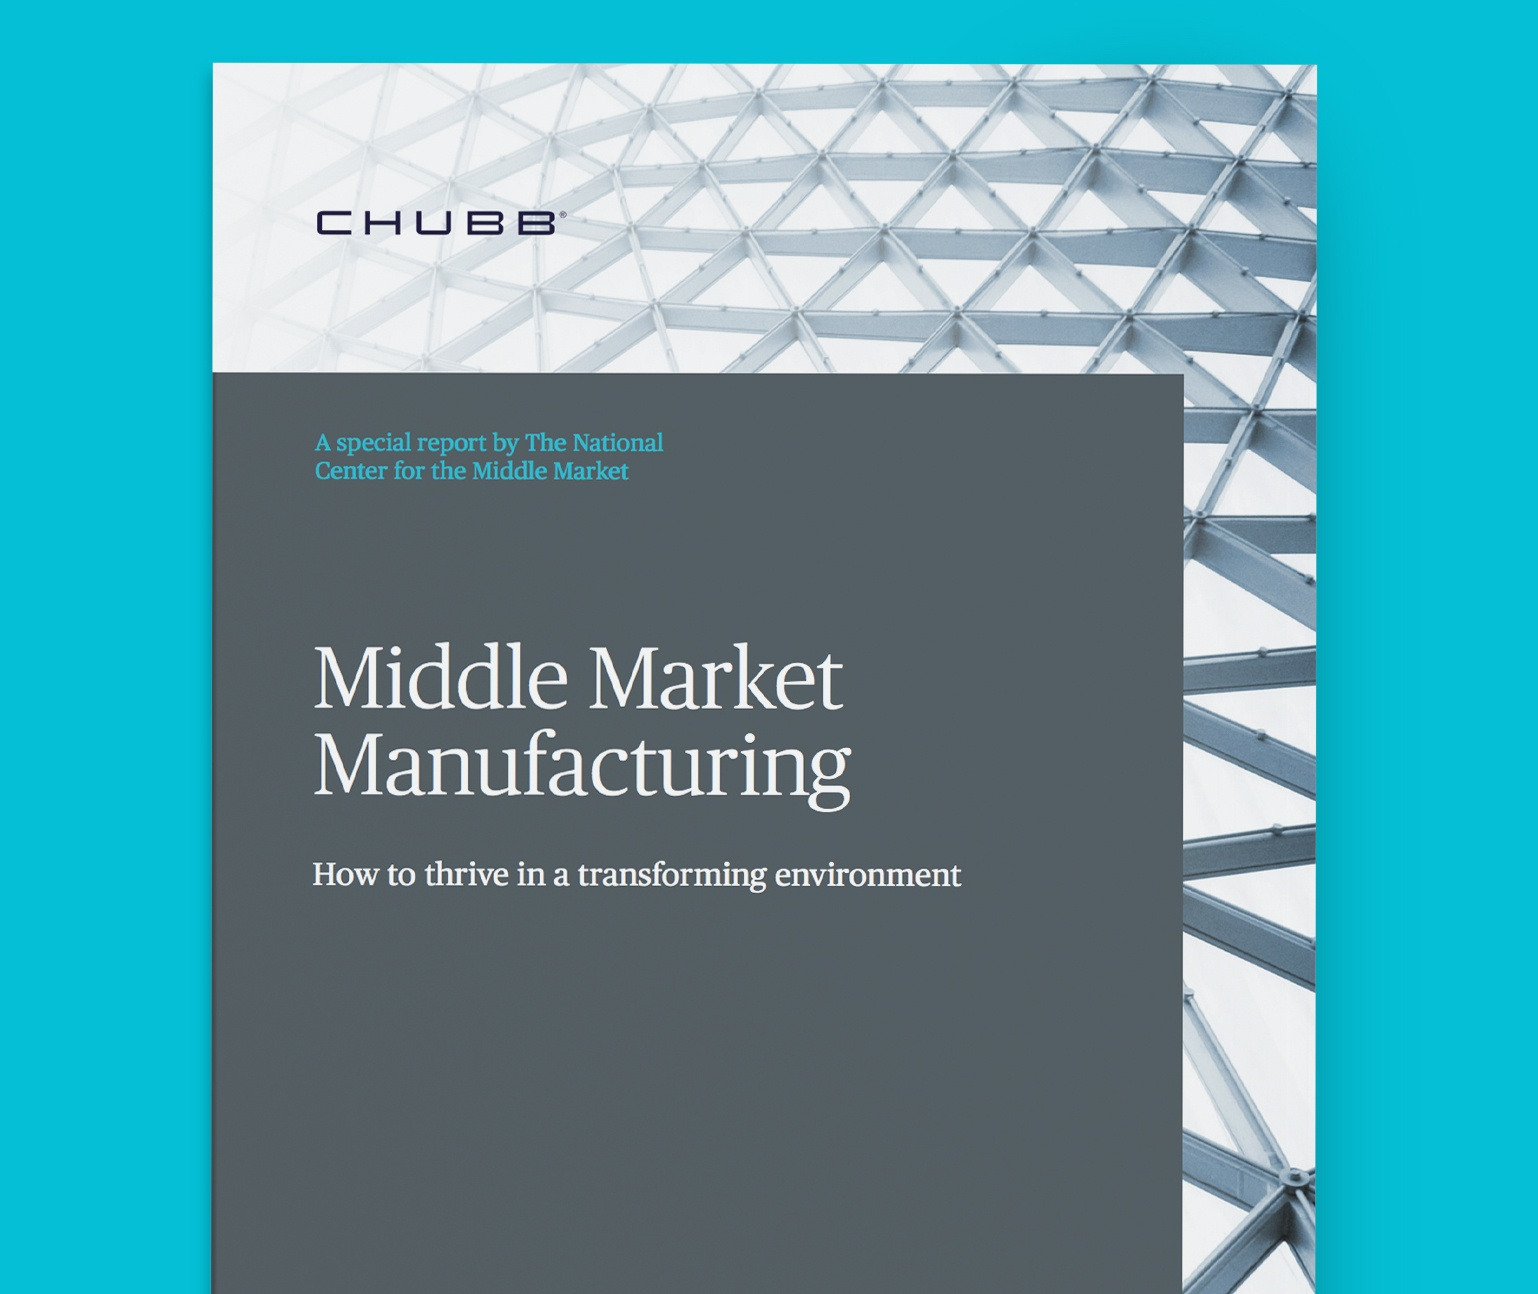 Middle Market Manufacturing Report Cover on a teal background